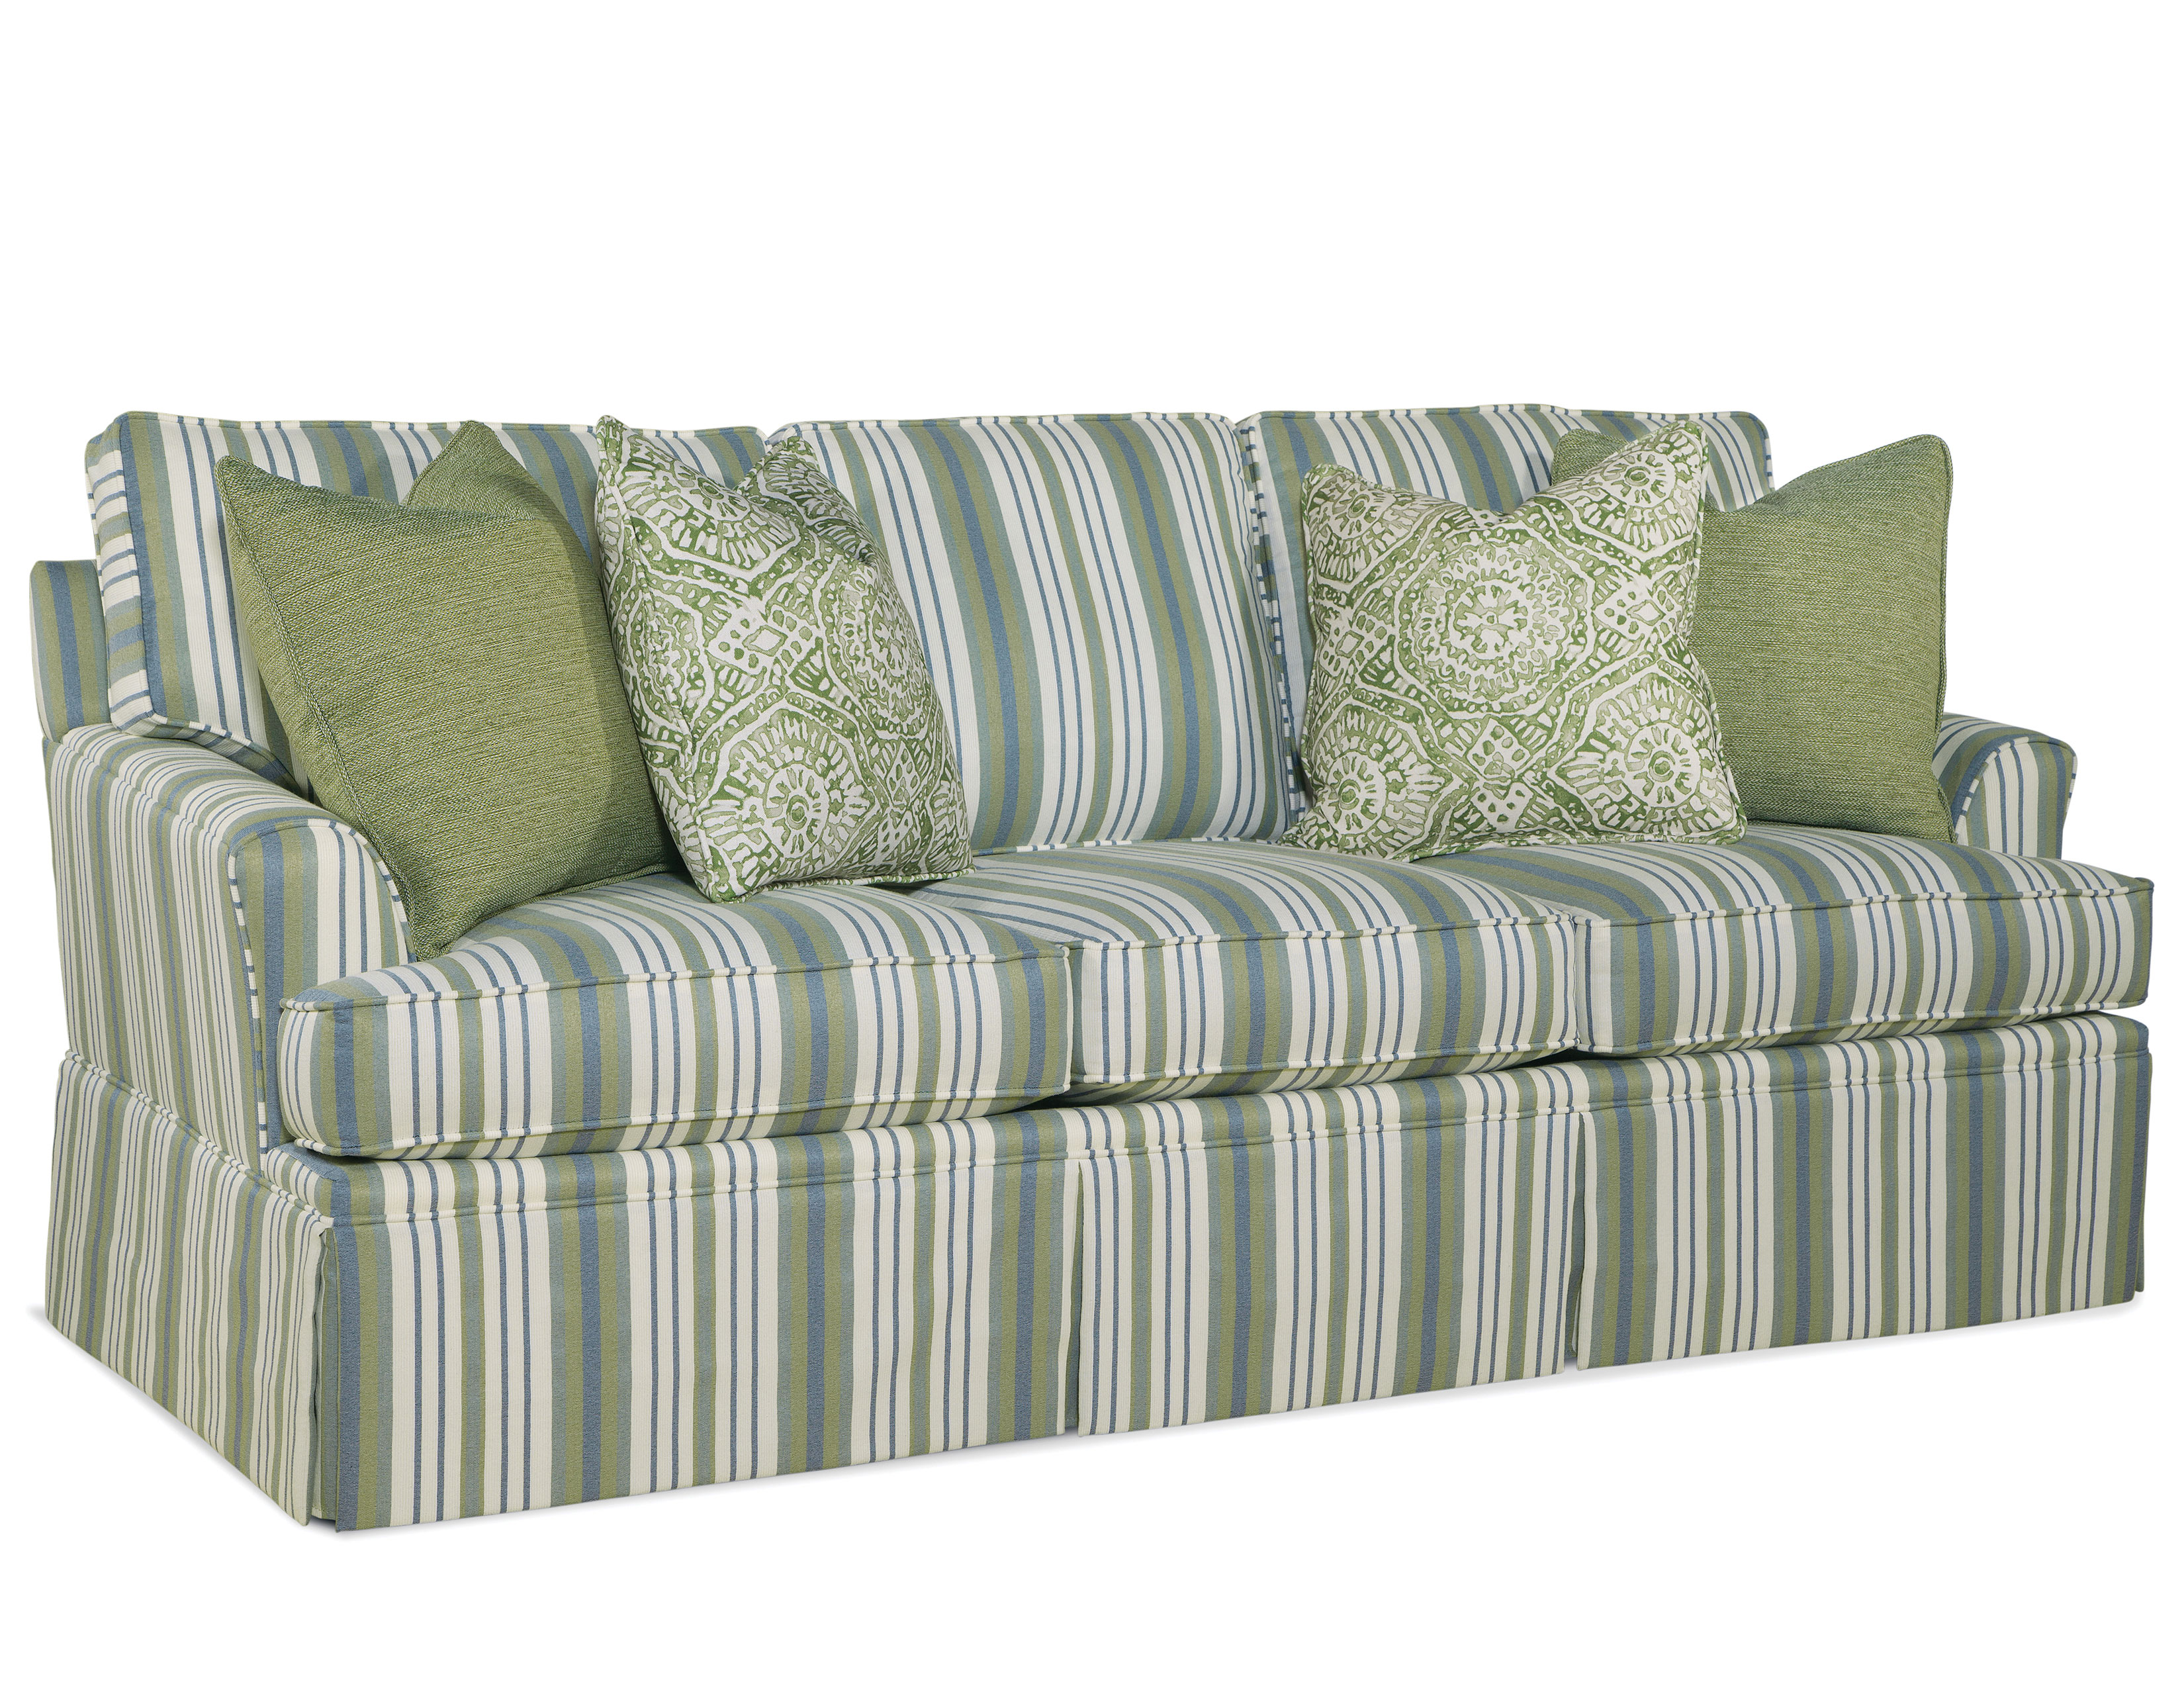 Westport 678 Queen Sofa Sleeper Made